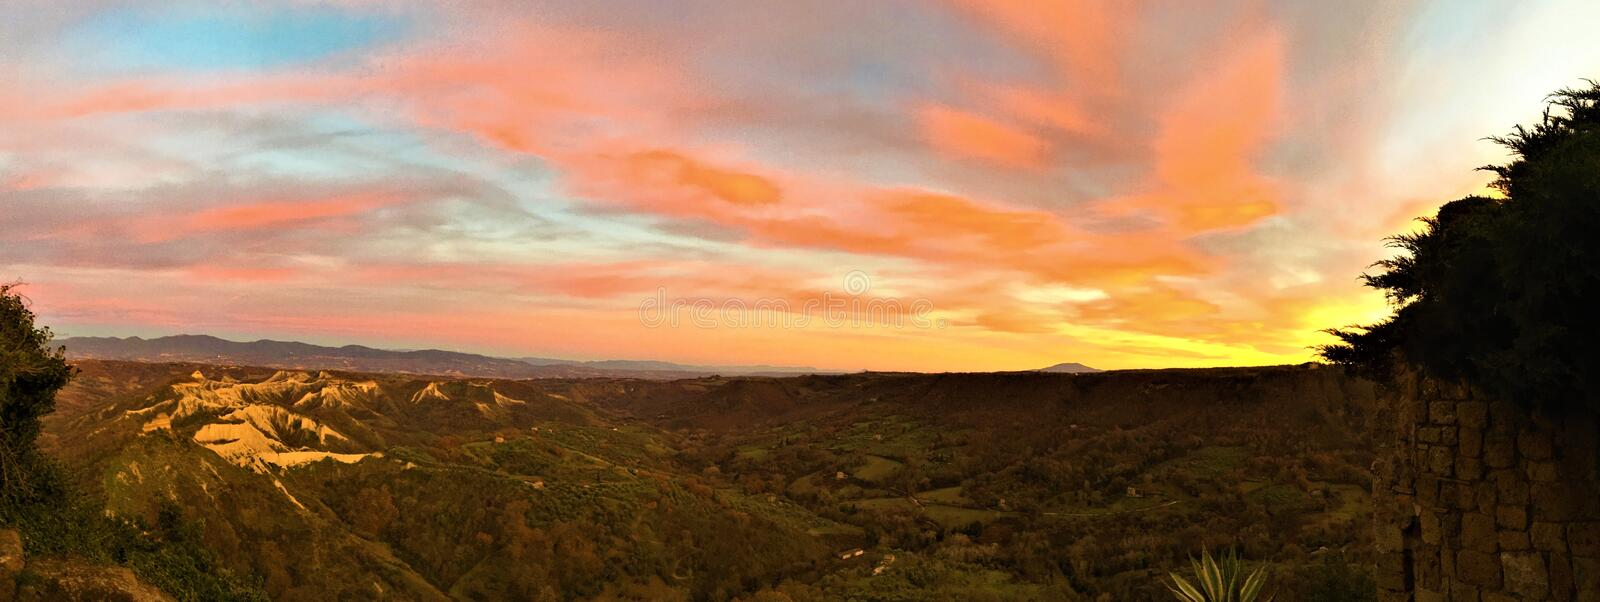 Colours explosion, sunset, sky, light, freedom, romantic and magic landscape, infinite land in Viterbo province, Italy. Colours explosion, sunset, nature, sky stock photo